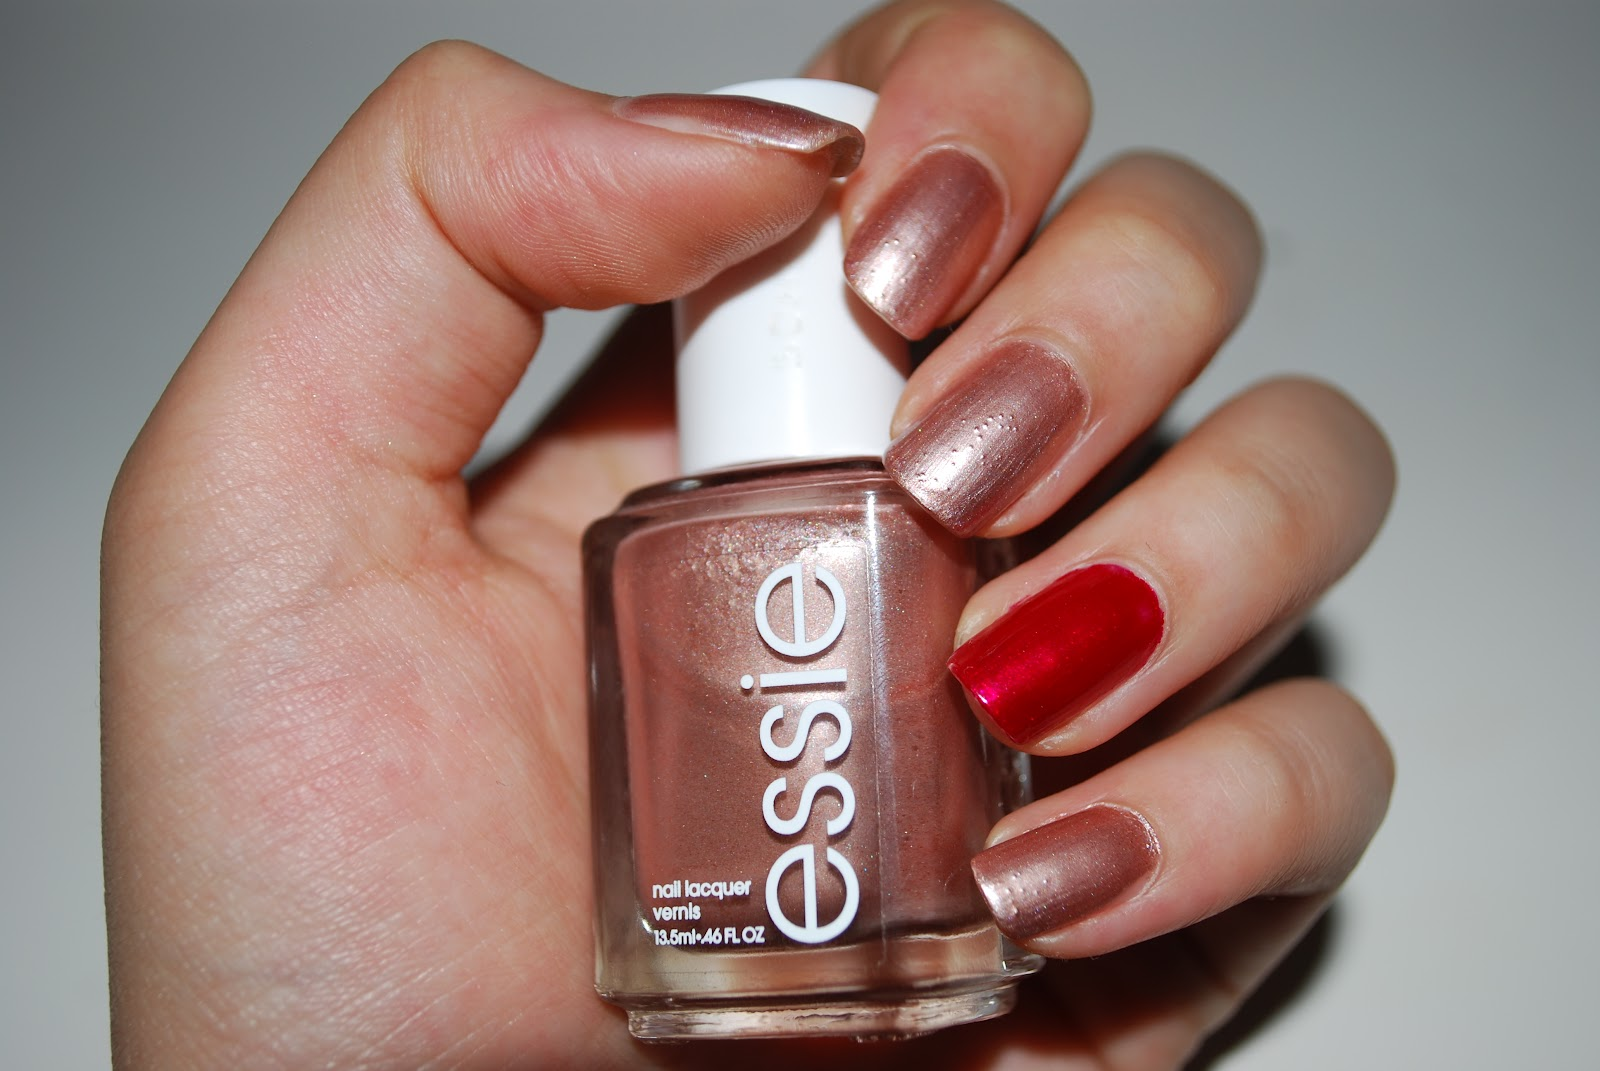 Essie Nail Polish Buy Me A Cameo - Absolute cycle